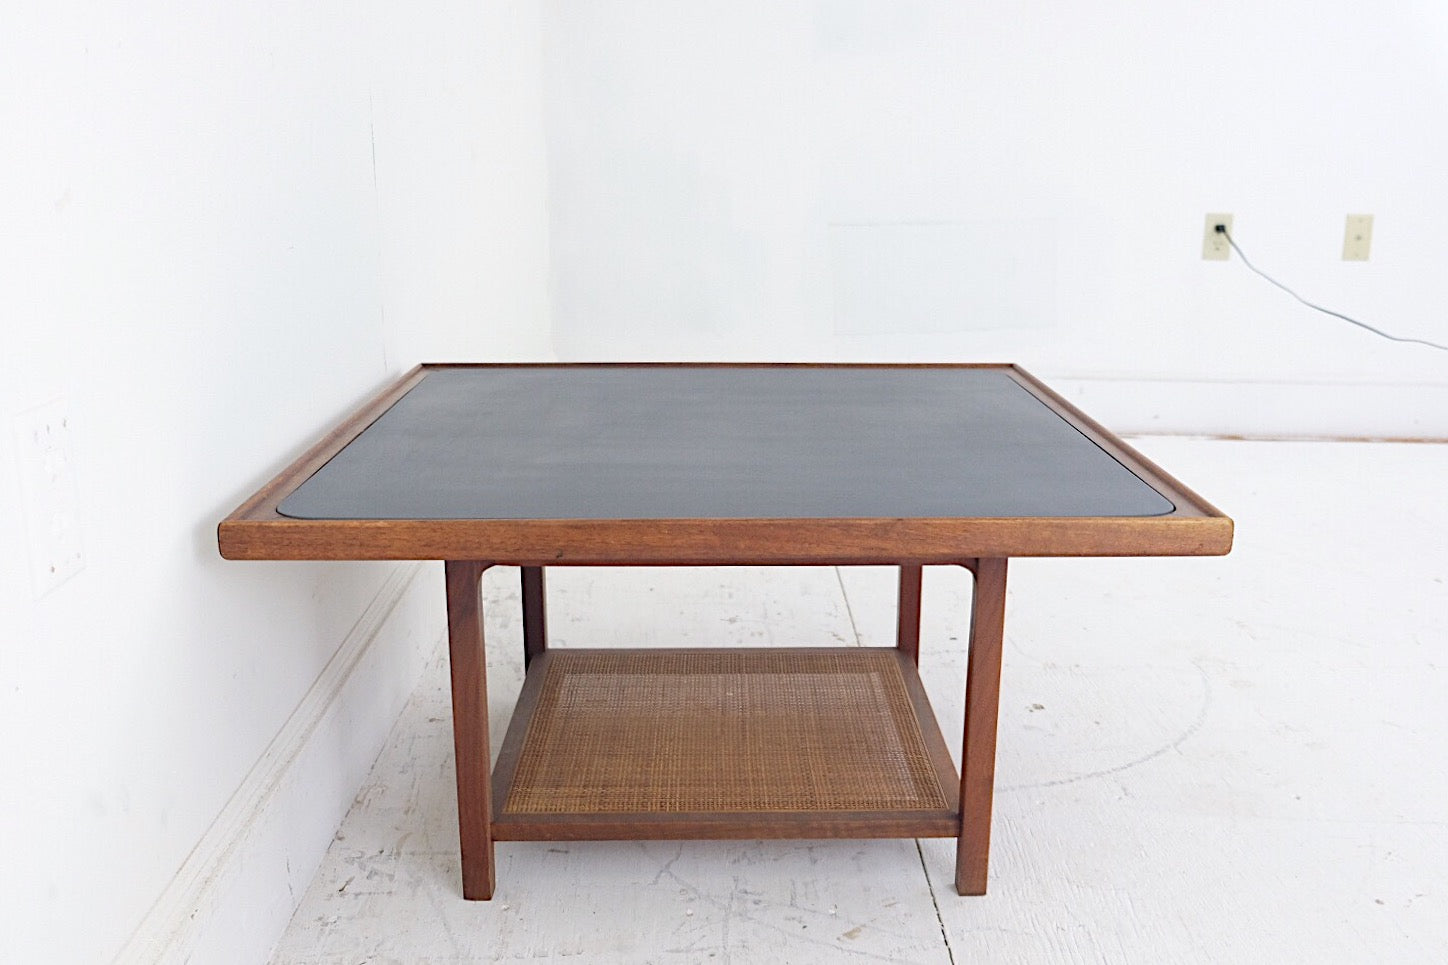 Danish Modern Square Coffee Table With Slate Top and Caned Shelf Below